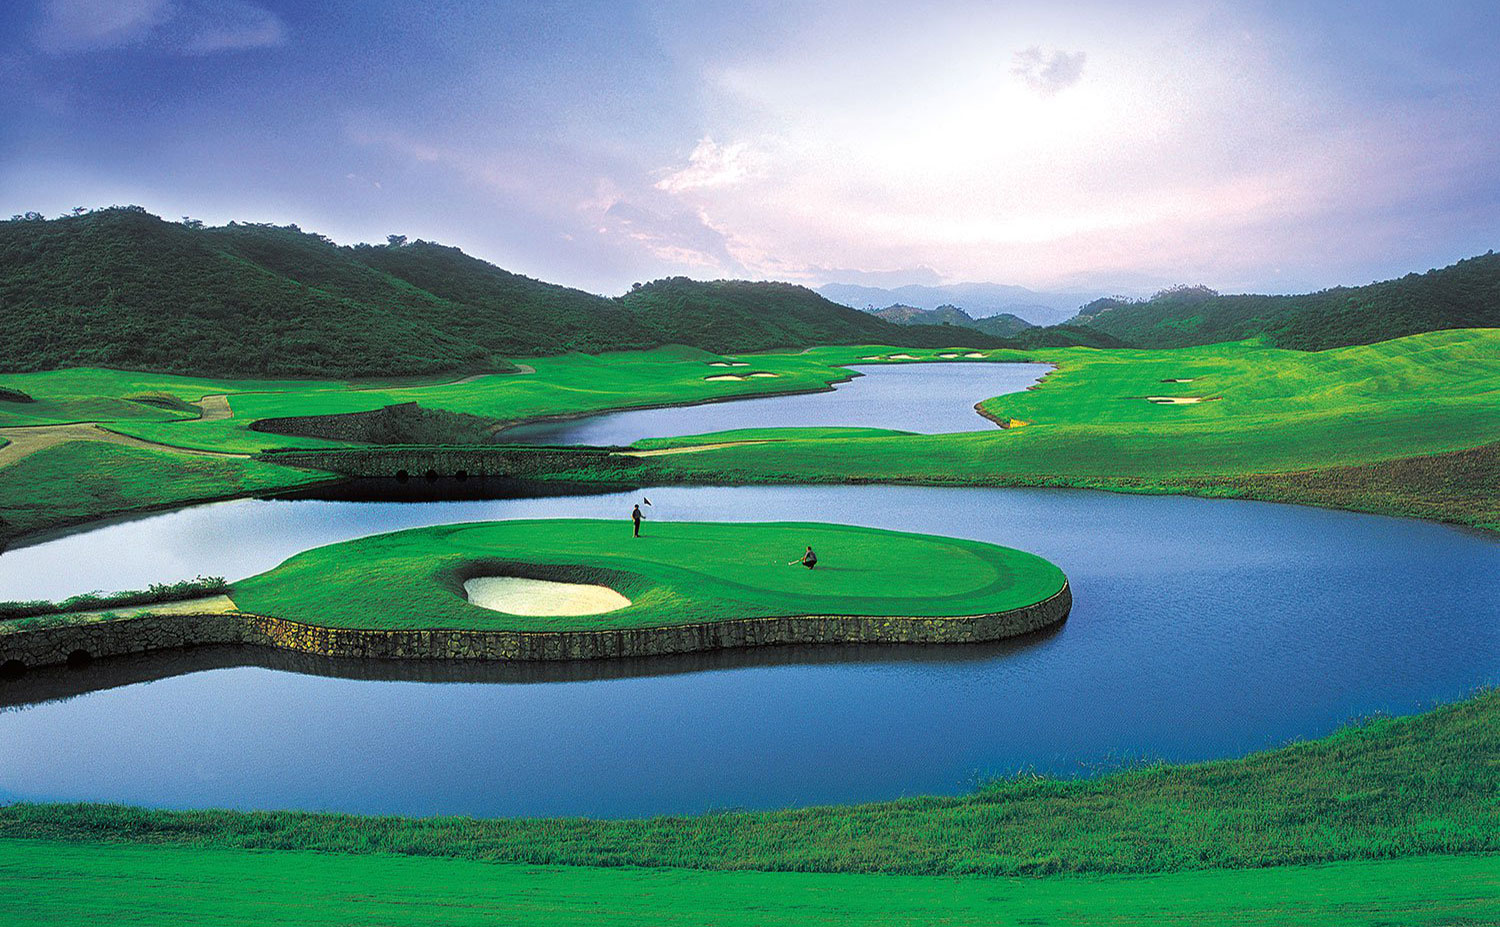 Faldo-Golf-Course-Mission-Hills-China